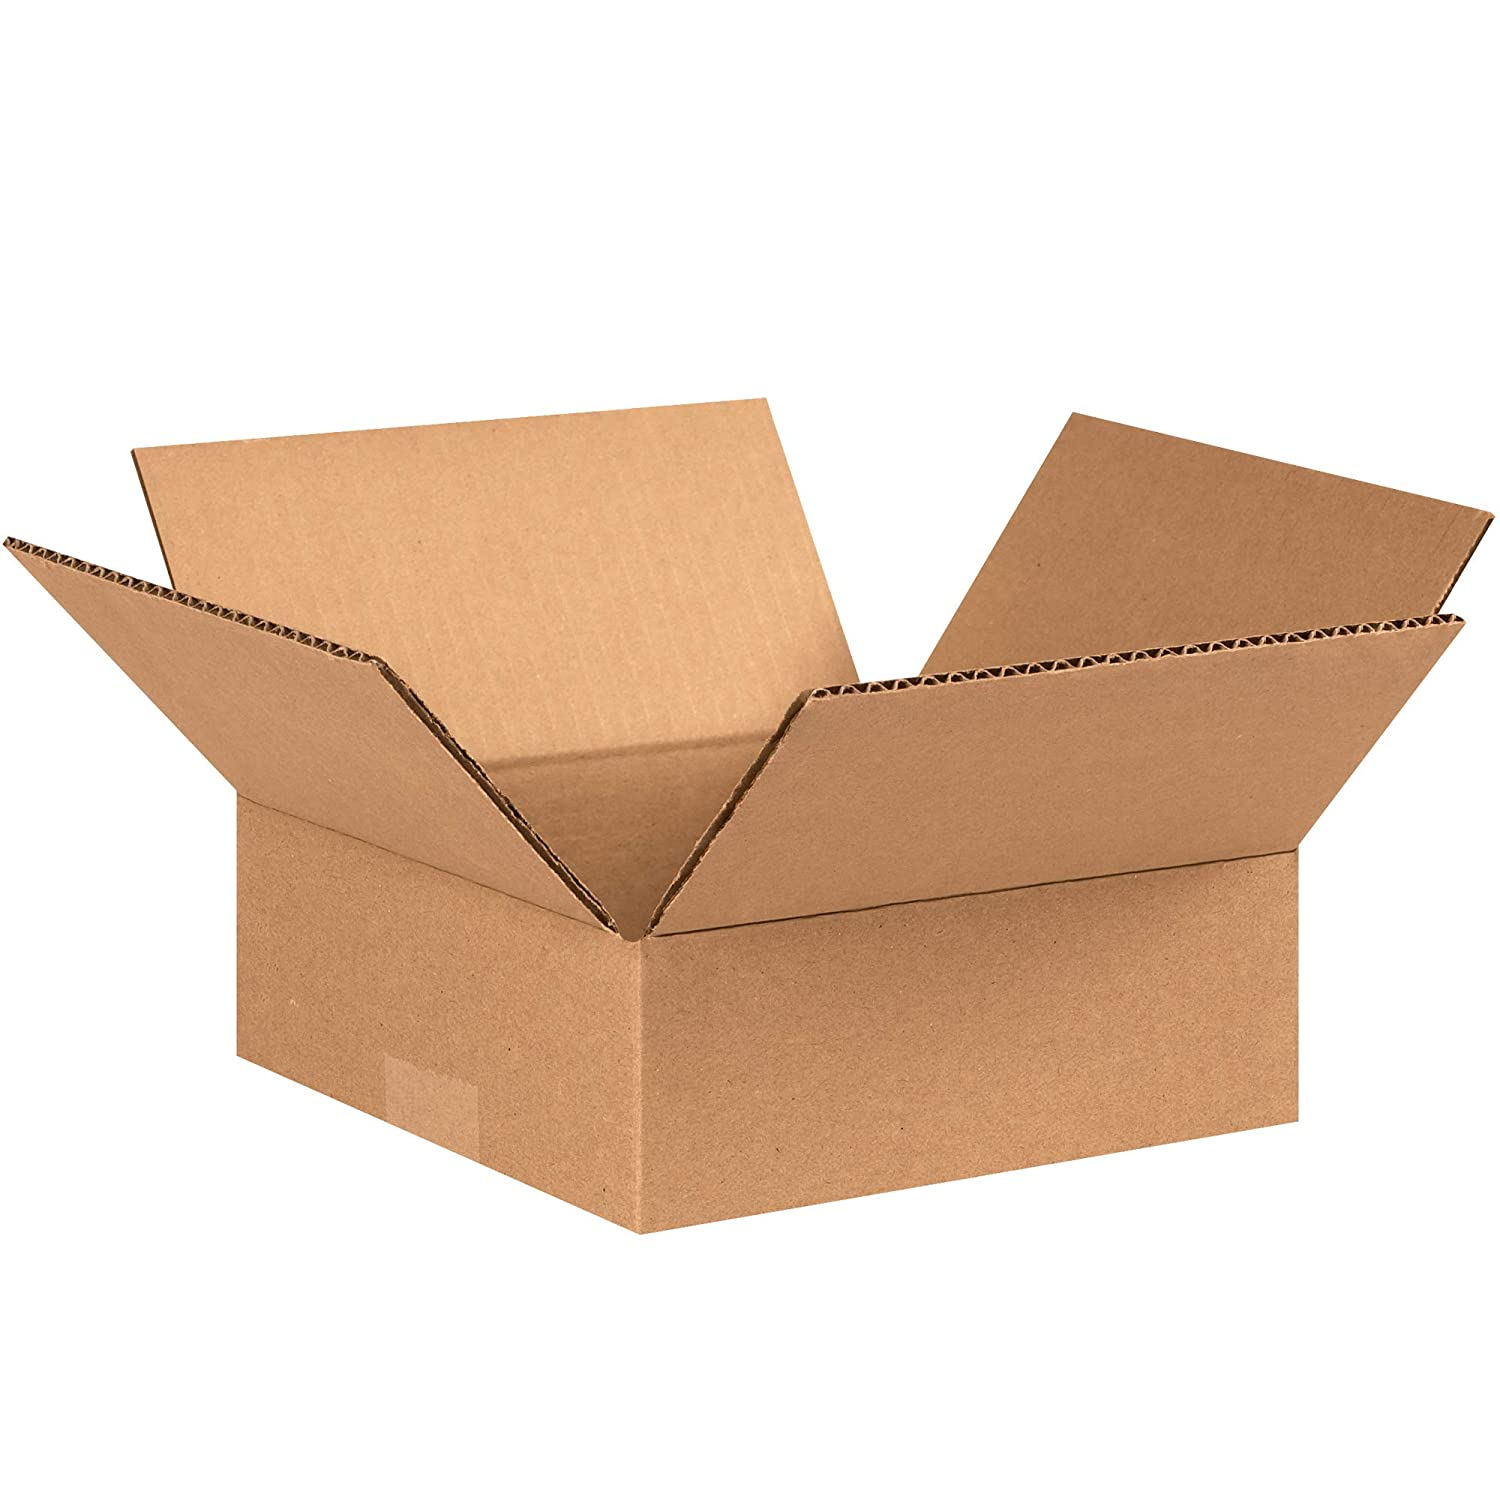 Flat Corrugated Max 60% OFF Boxes 8